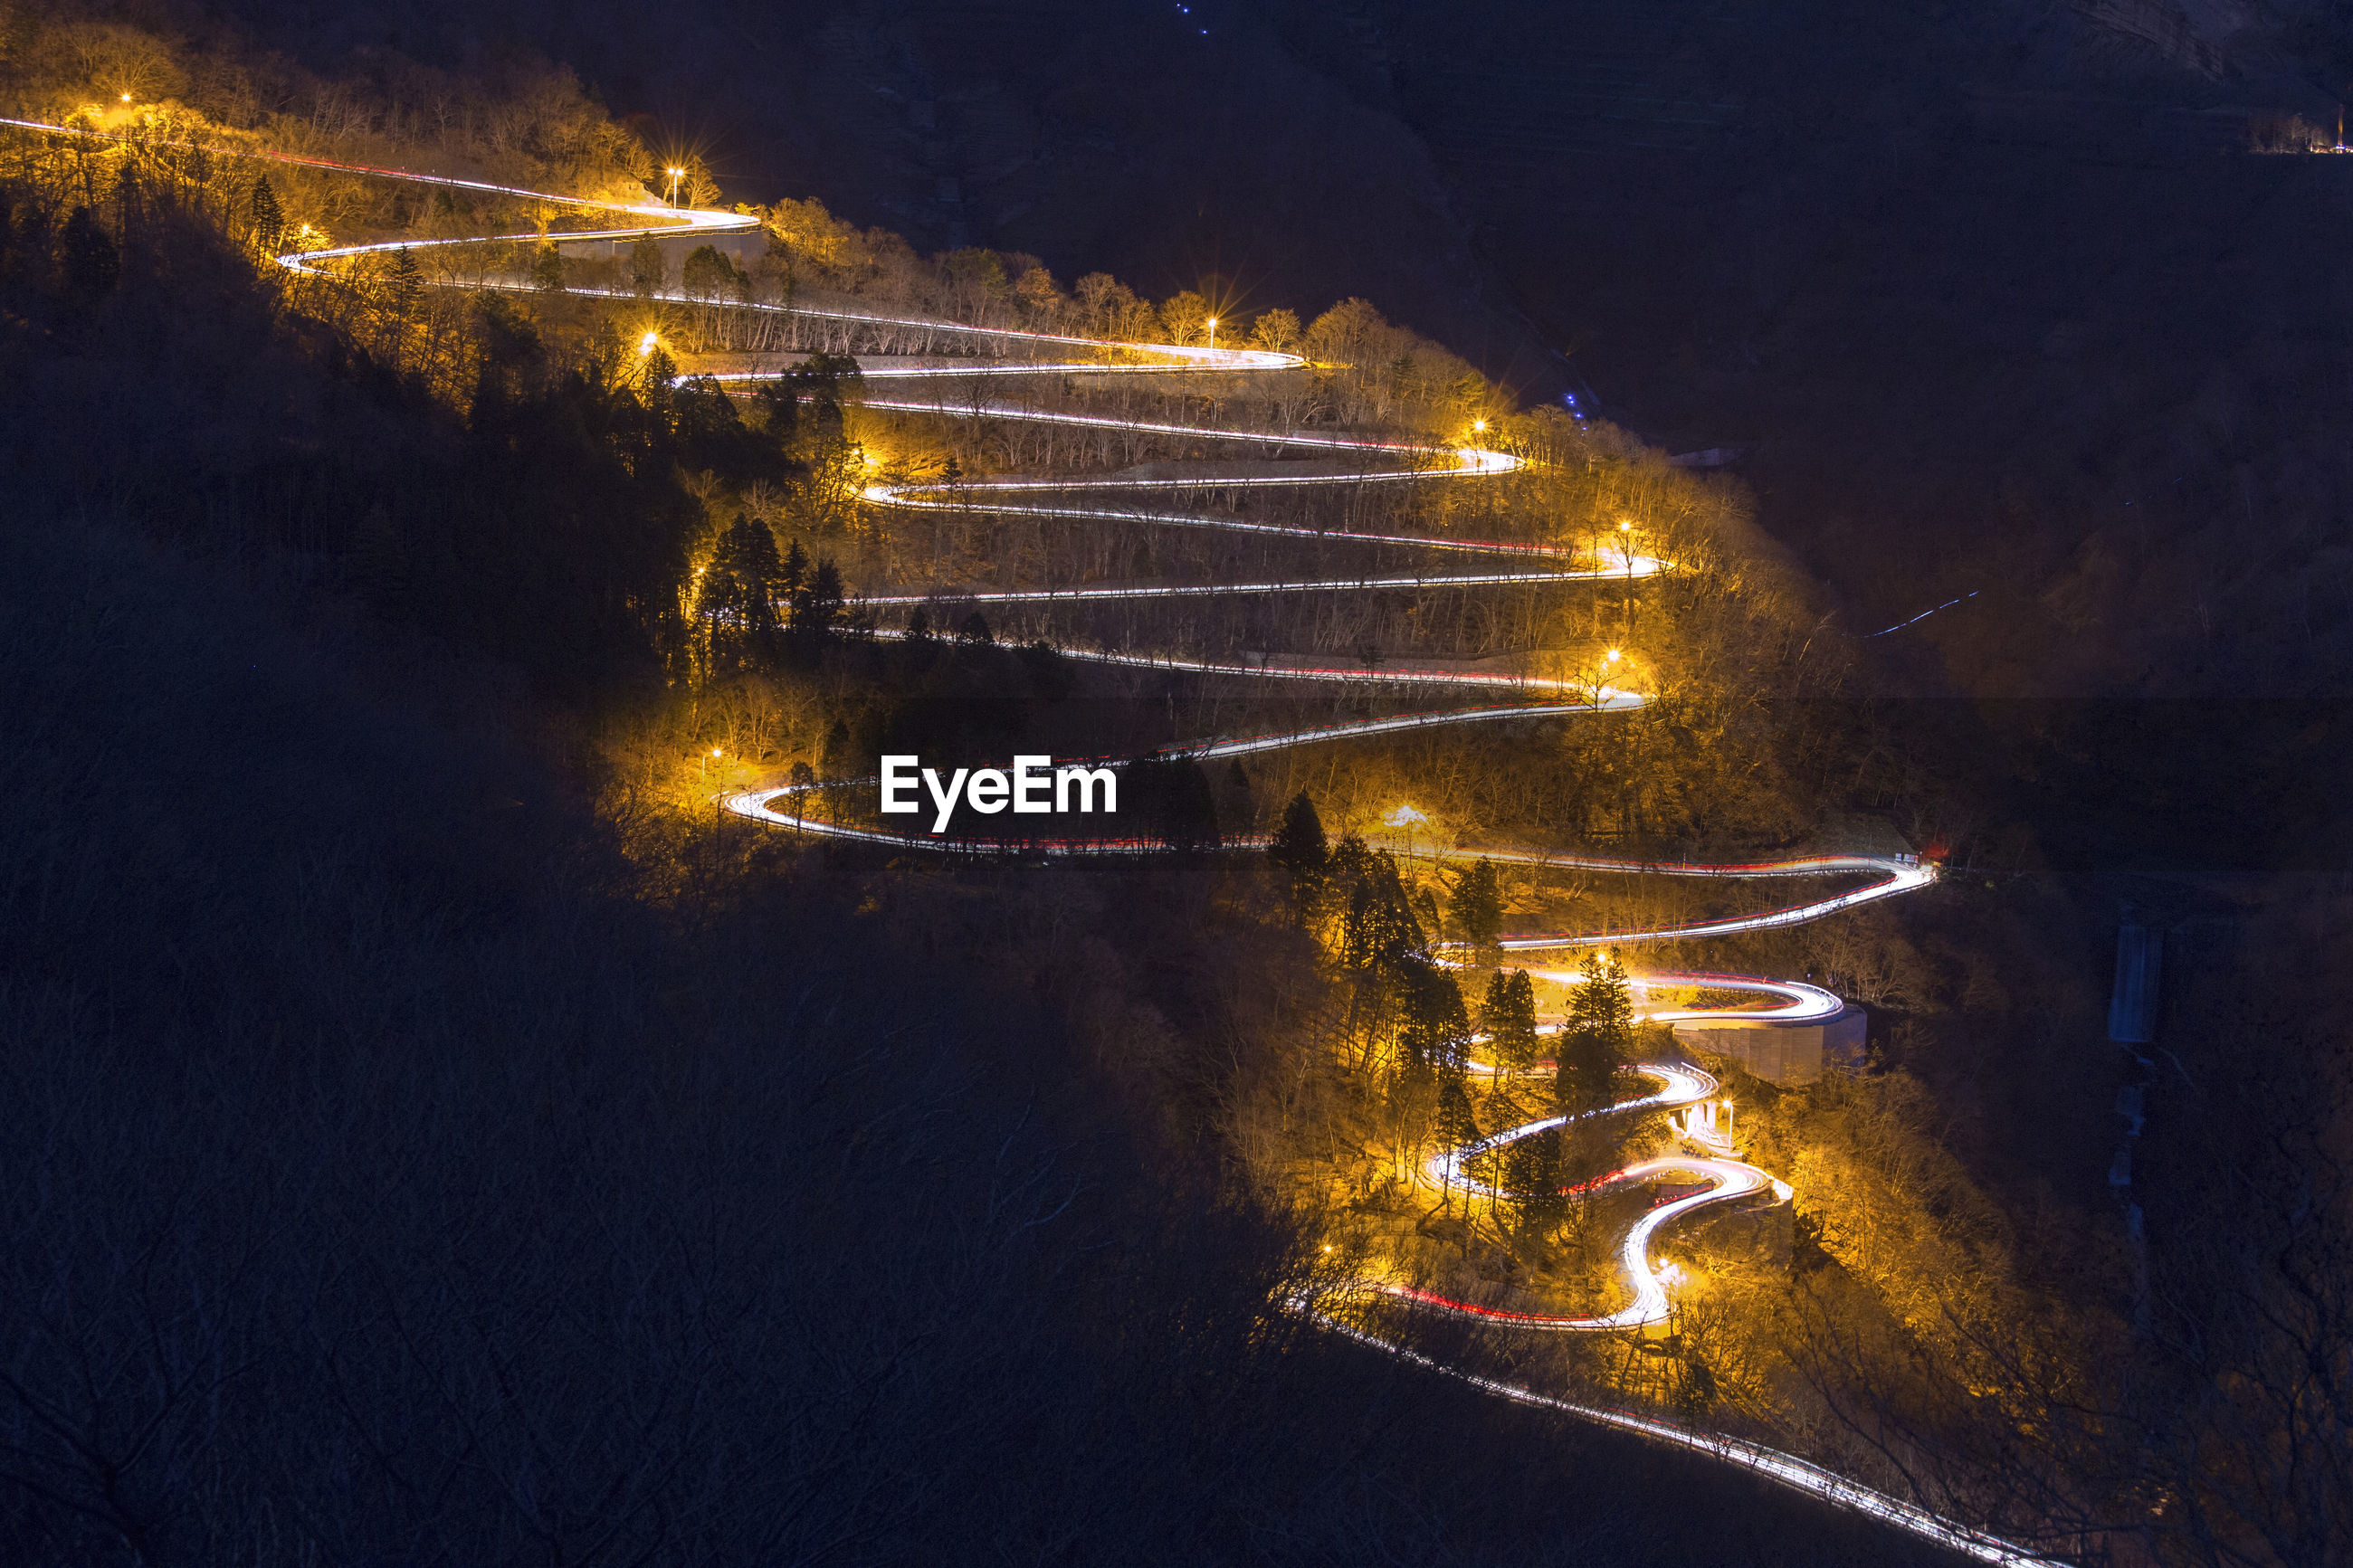 HIGH ANGLE VIEW OF ILLUMINATED CITY BY ROAD